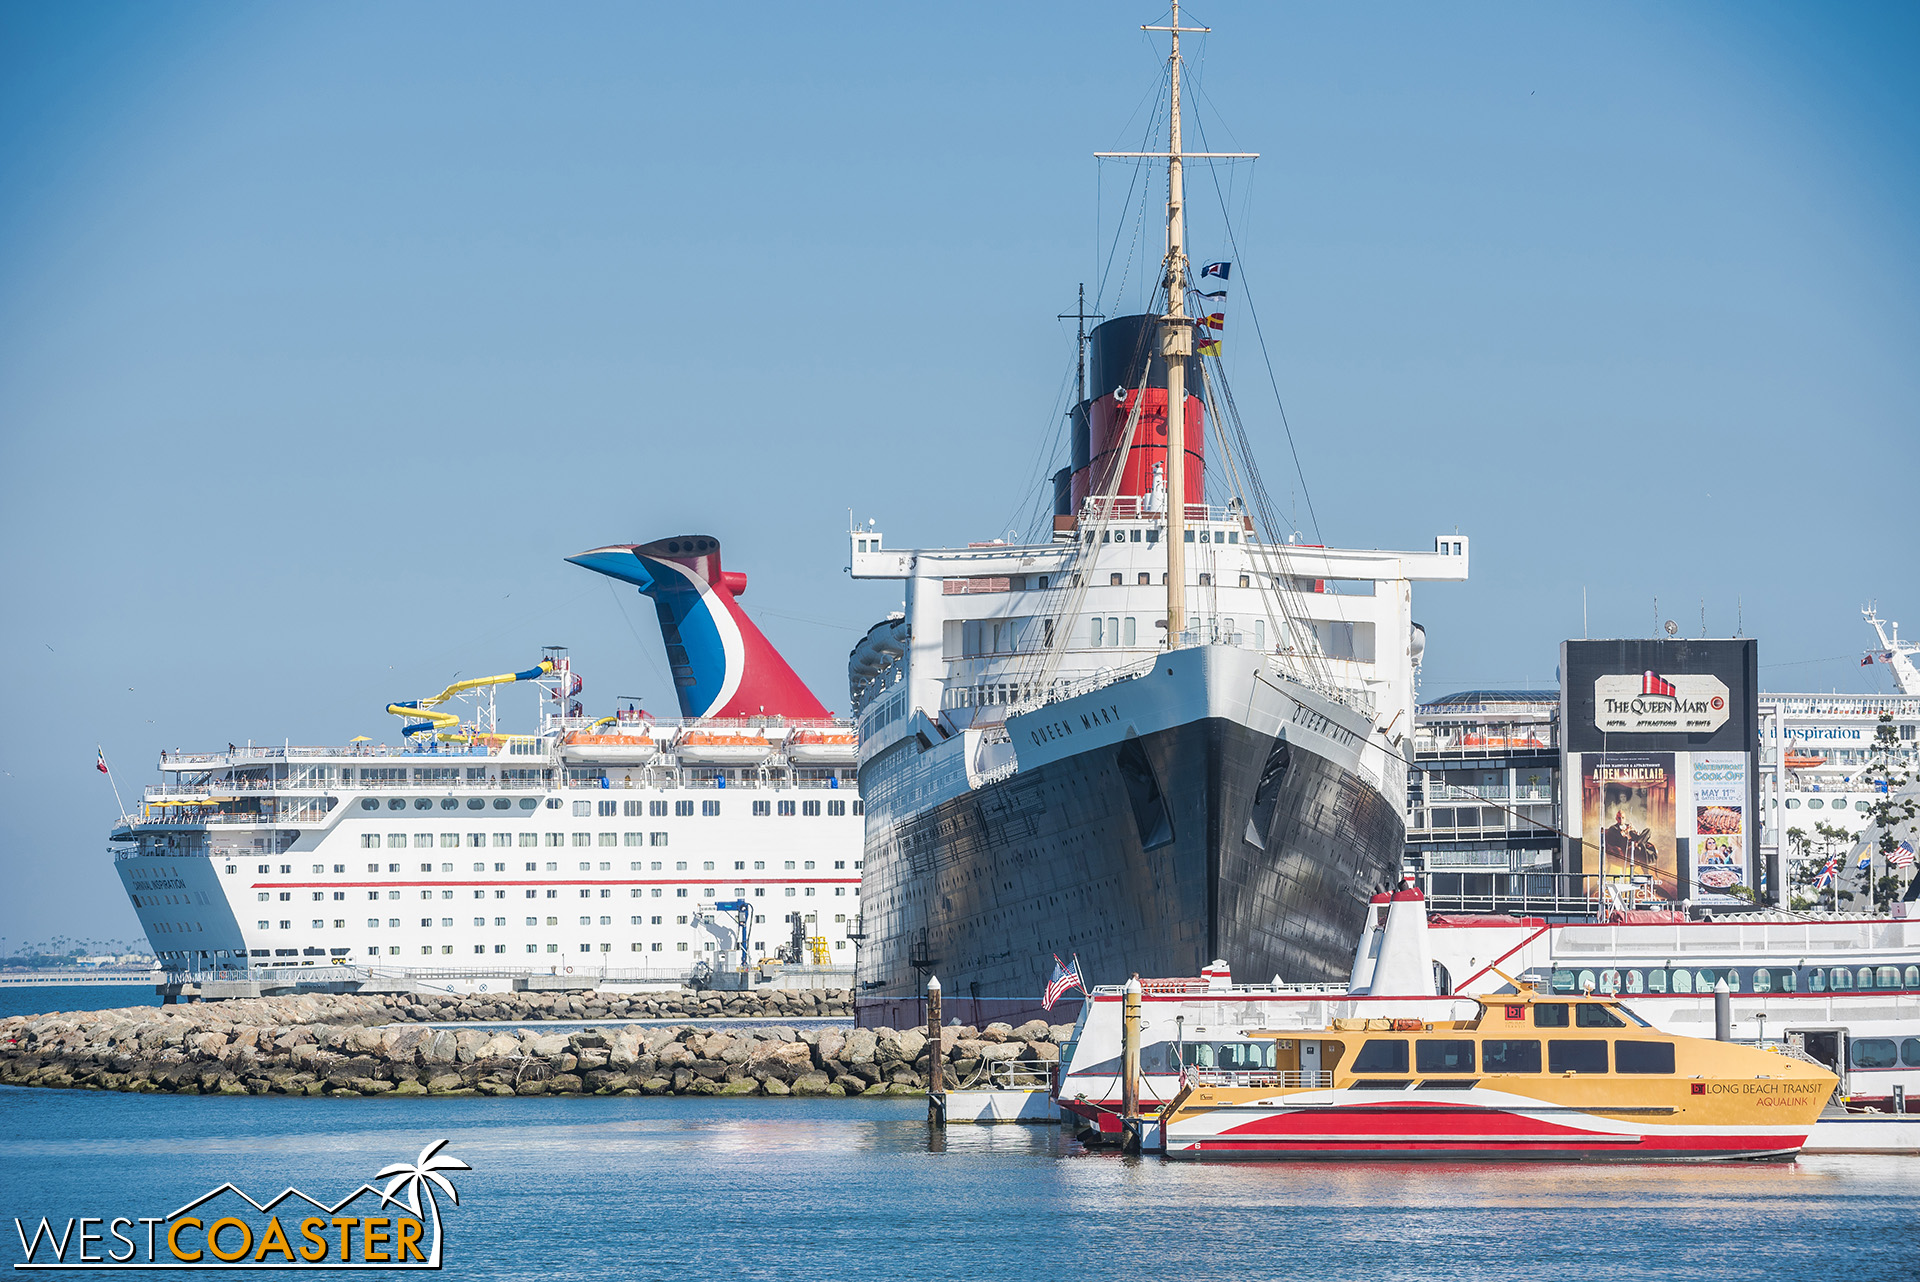 A permanently docked steam liner in front of a soon-to-depart cruise ship.